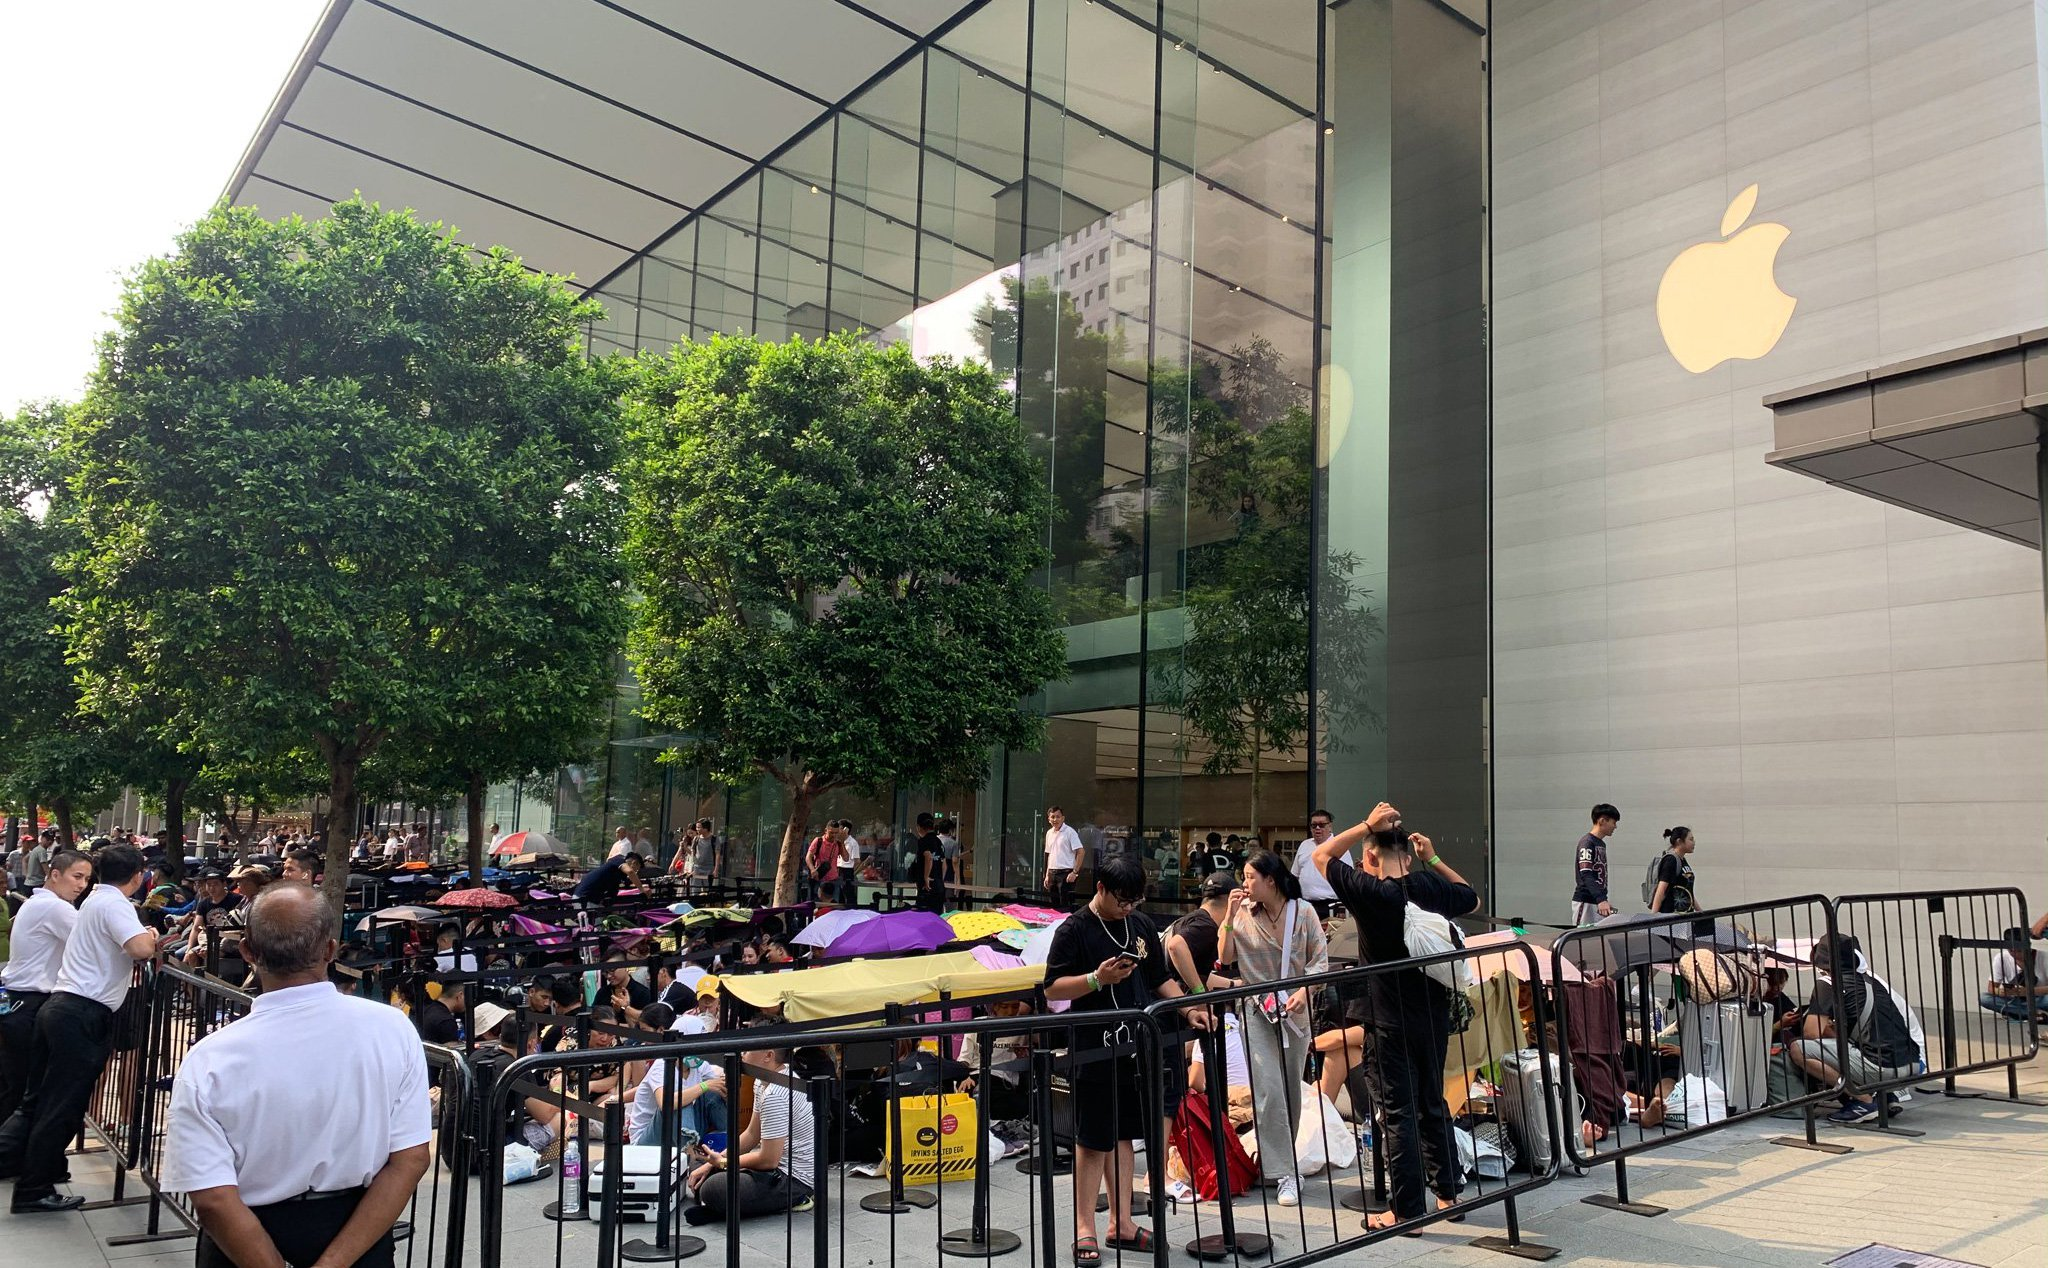 Few photos of the atmosphere outside the Apple Store in Singapore before the launch date